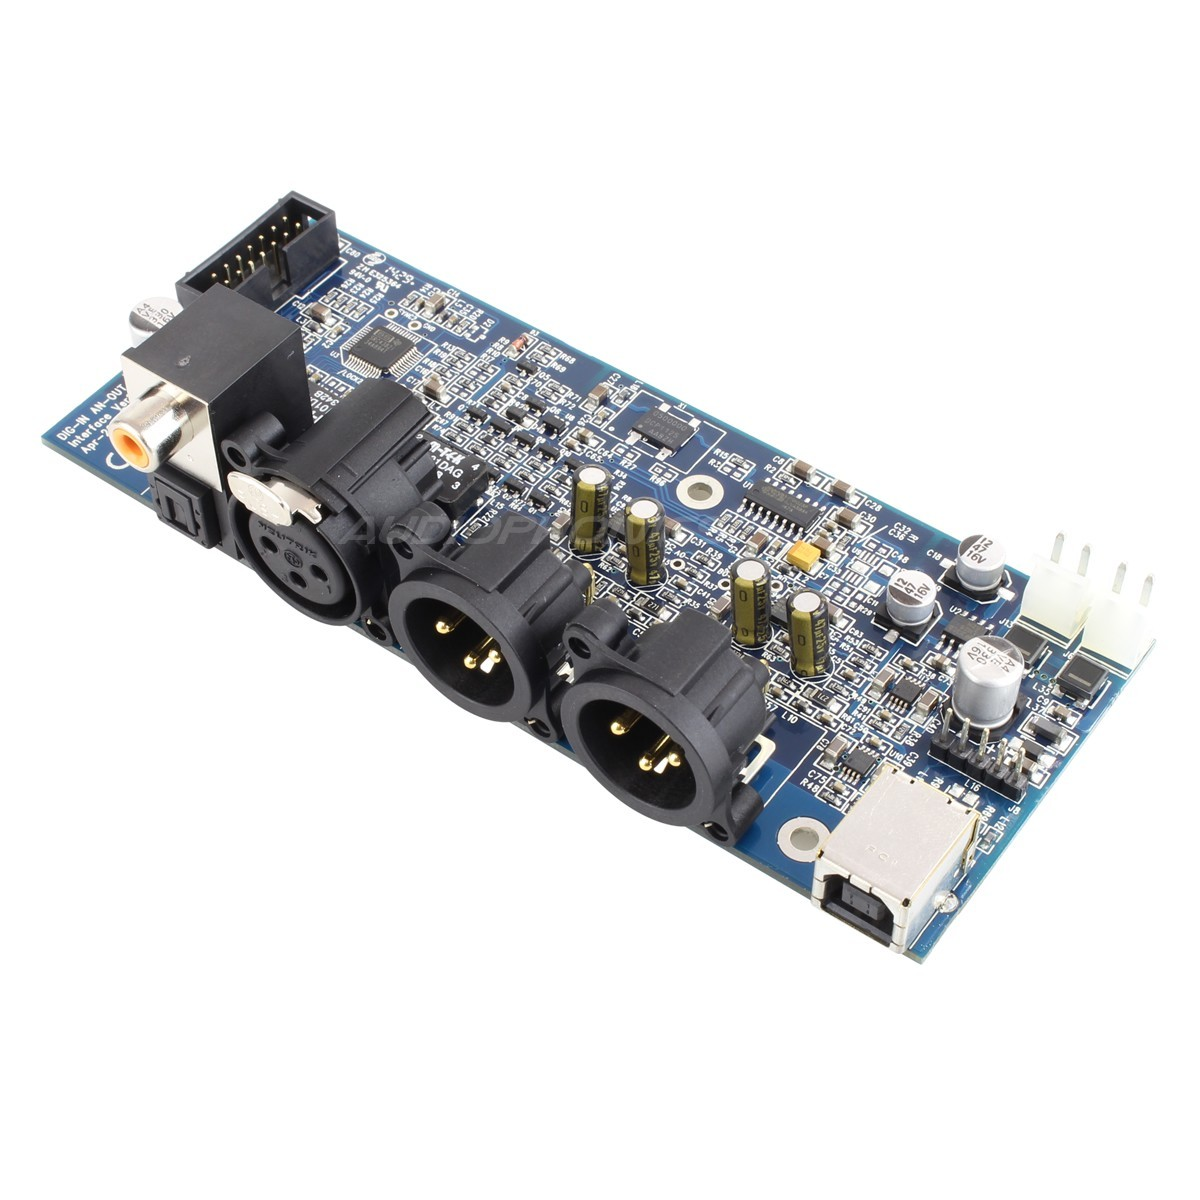 MiniDSP DA-FP DIY Board DAC ES9023 SRC4382 Digital to I2S & I2S to Analog